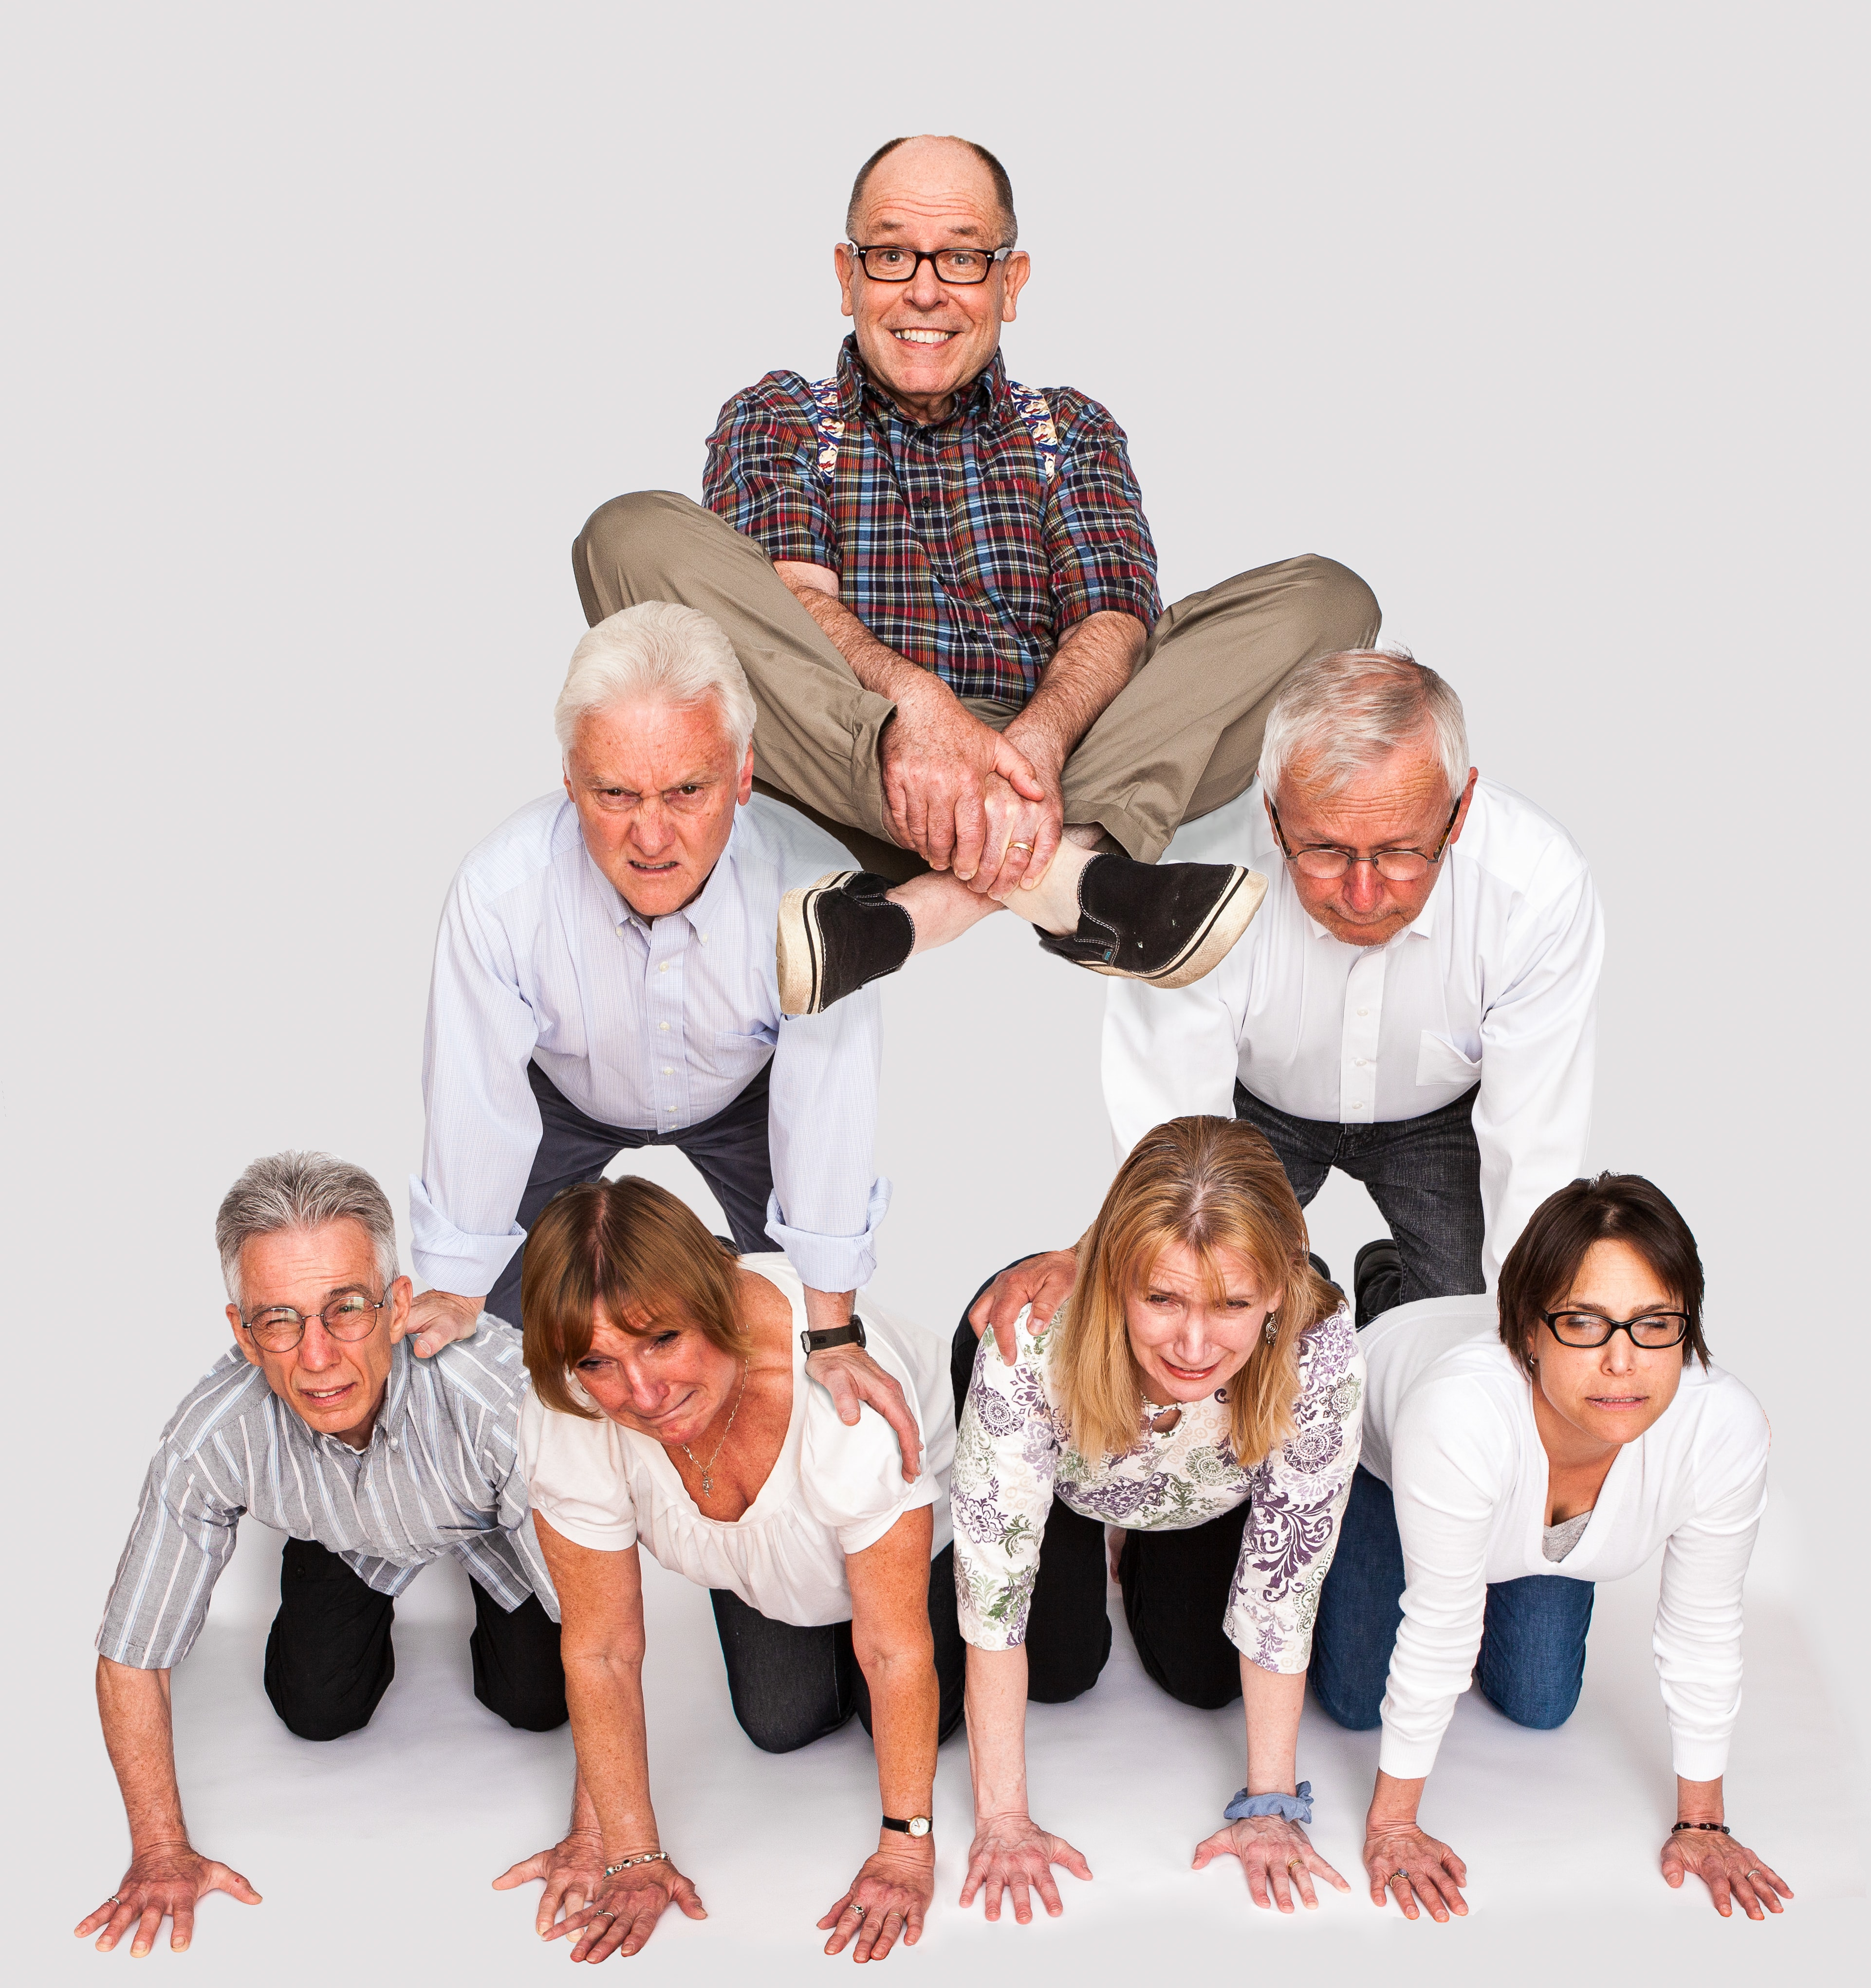 Ask me how I made this human pyramid for headshots in rochester.